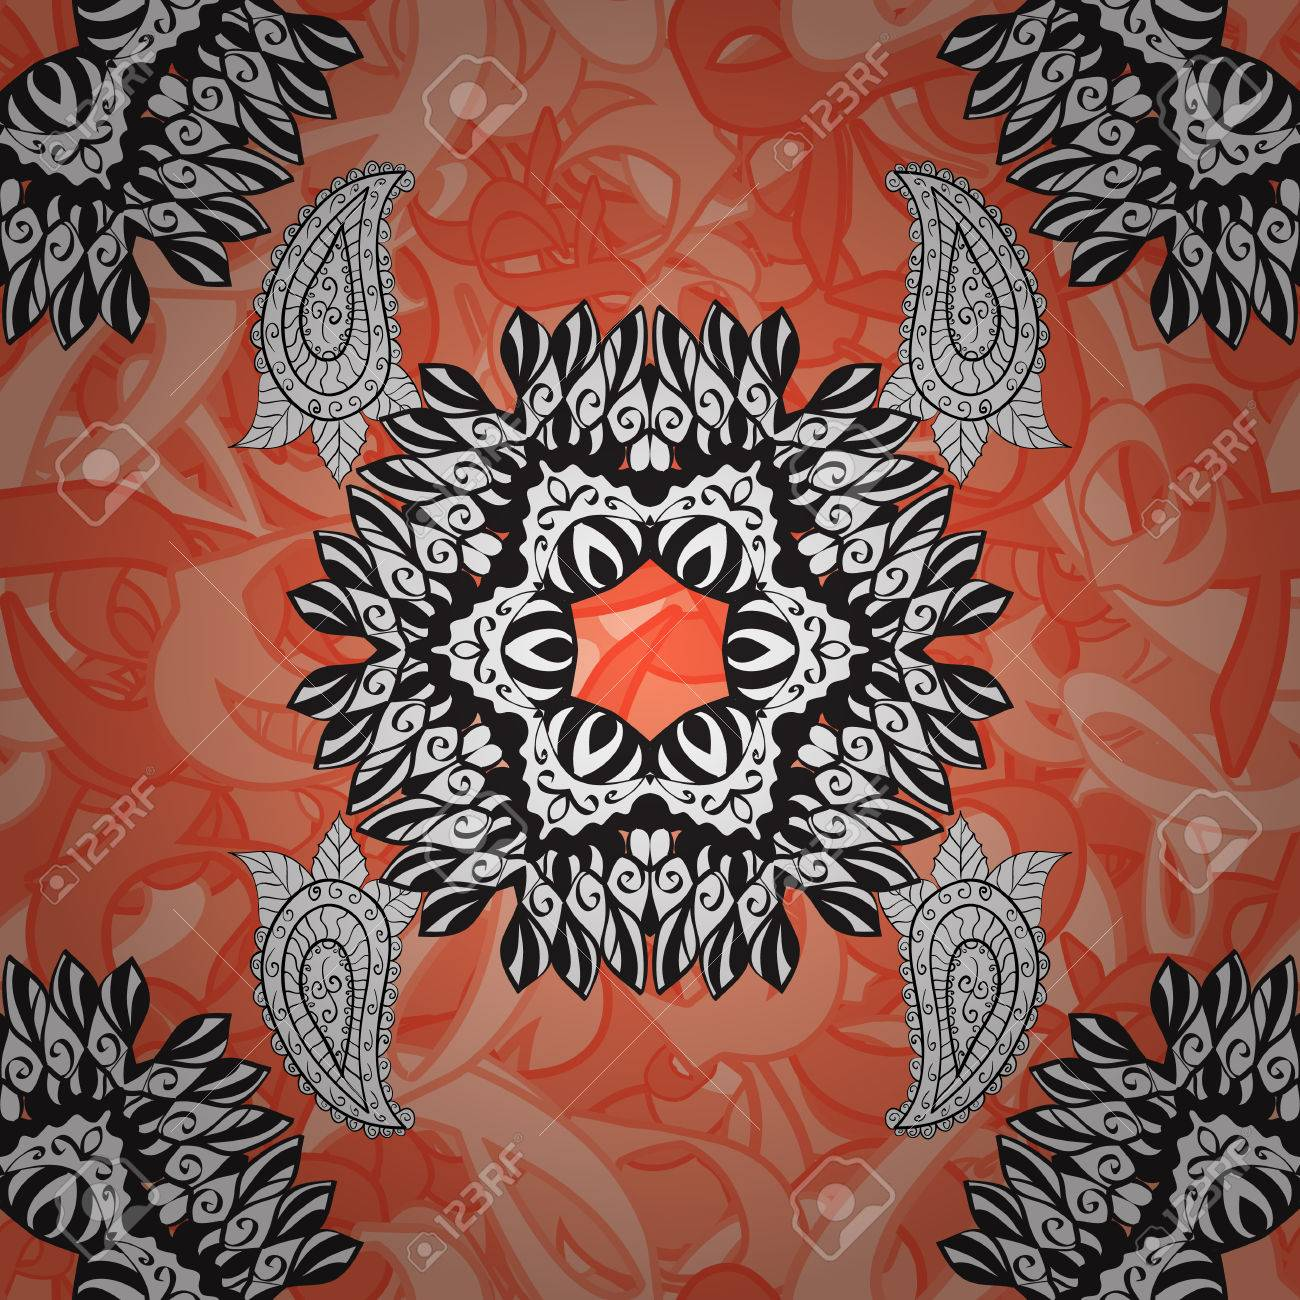 Doodle Background In Vector With Doodles, Flowers And Paisley ...